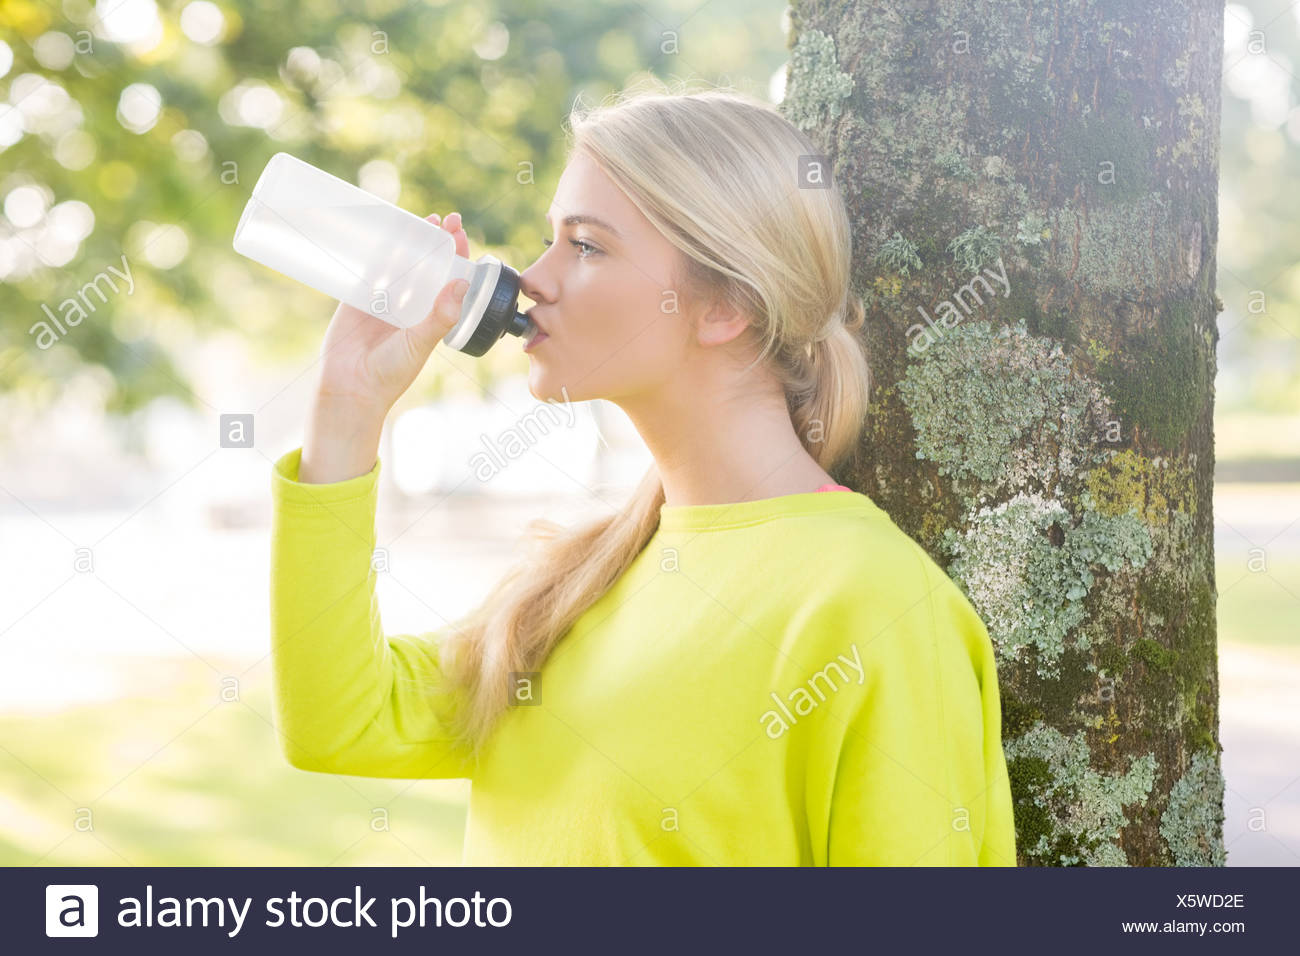 Fit peaceful blonde drinking from water bottle - Stock Image